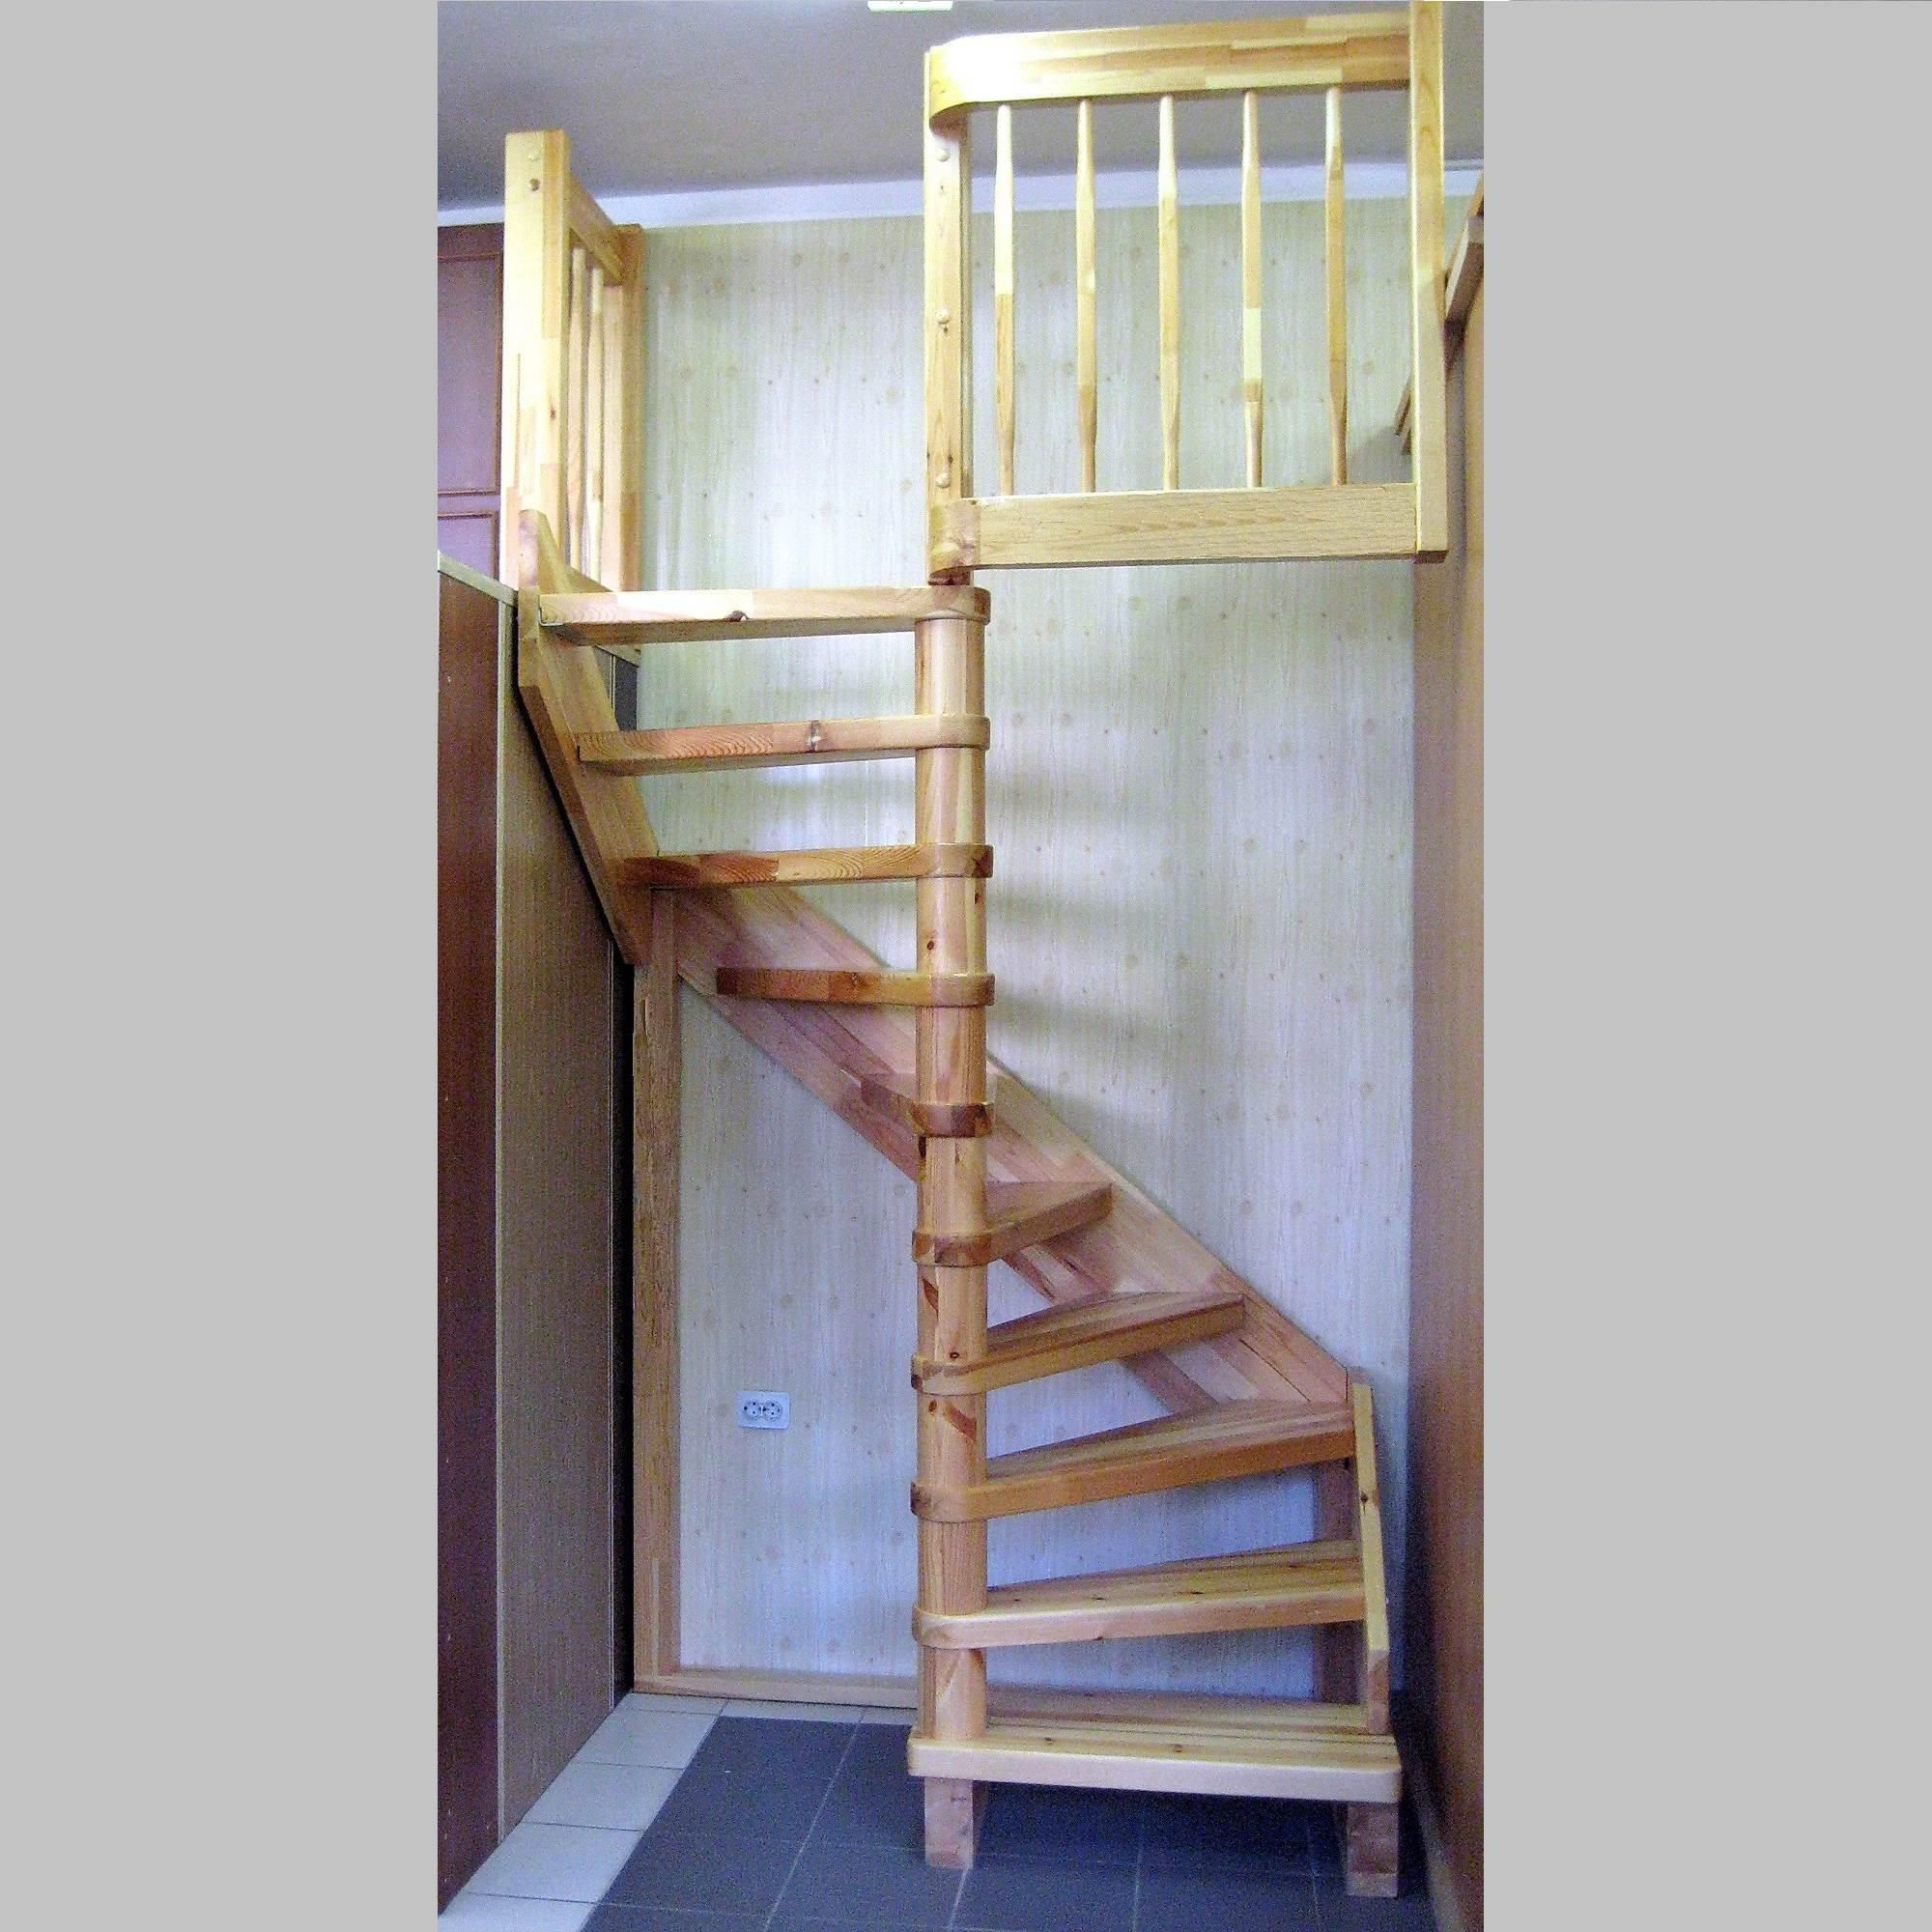 Short Stairs Ideas: Rustic Natural Wooden Spiral Stairs For Small Space For